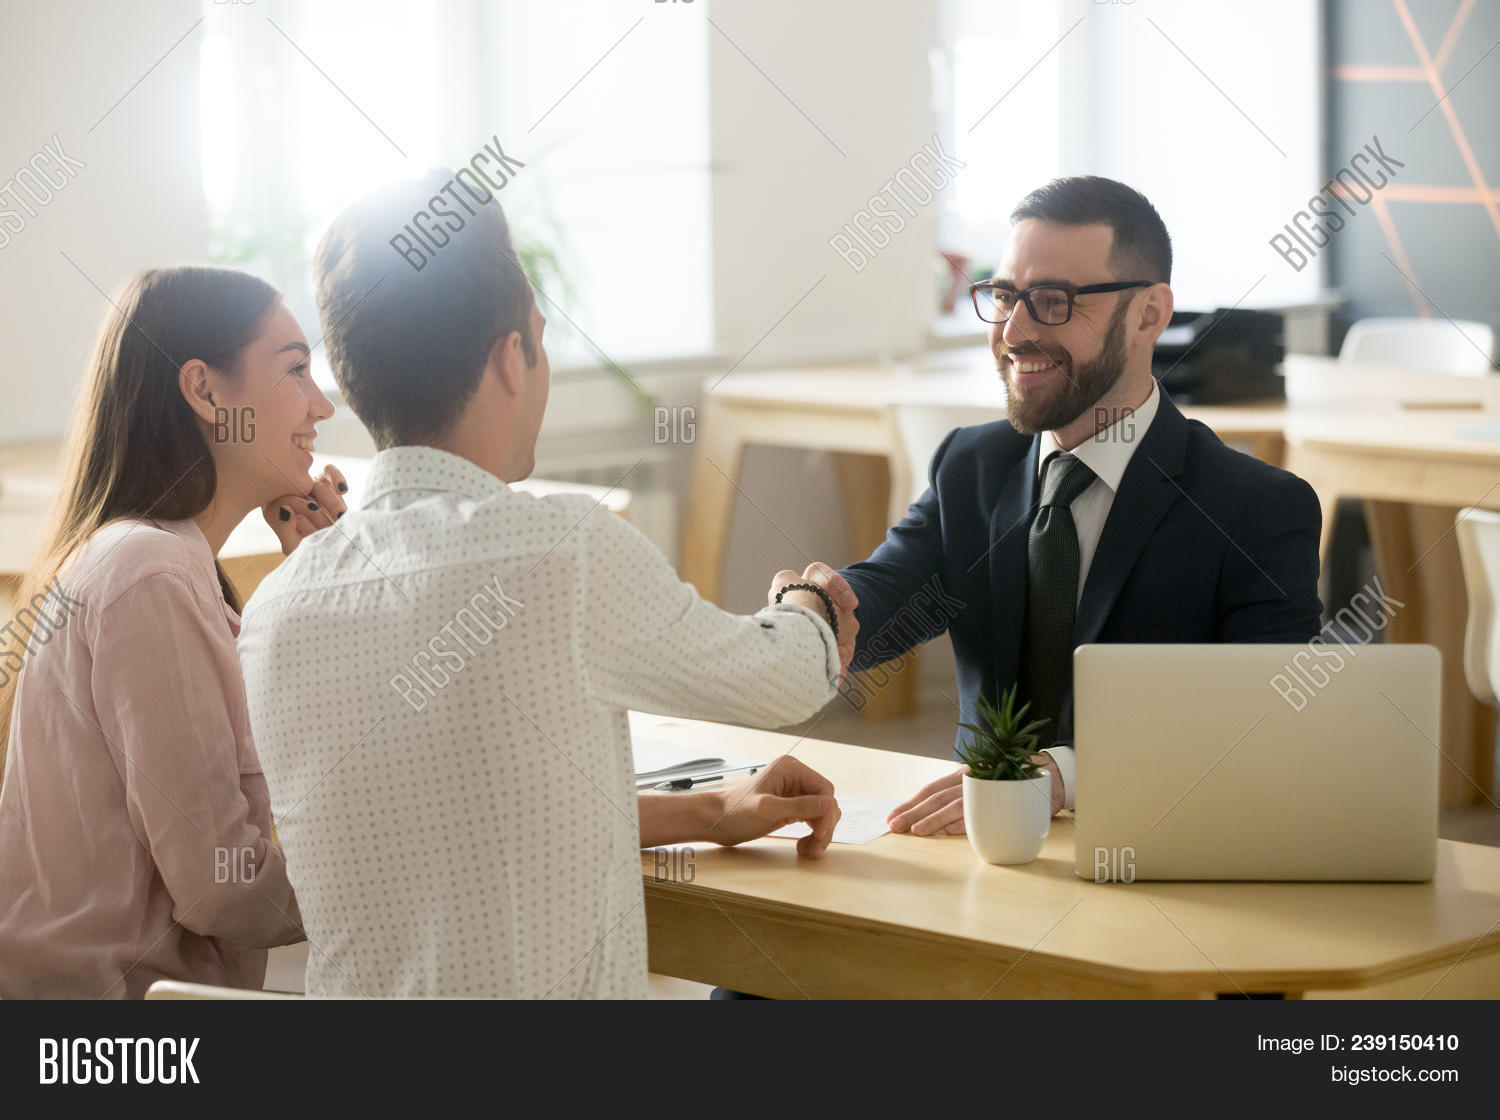 Smiling Lawyer, Realtor Or Financial Advisor Handshaking Young Couple Thanking For Advice, Insurance